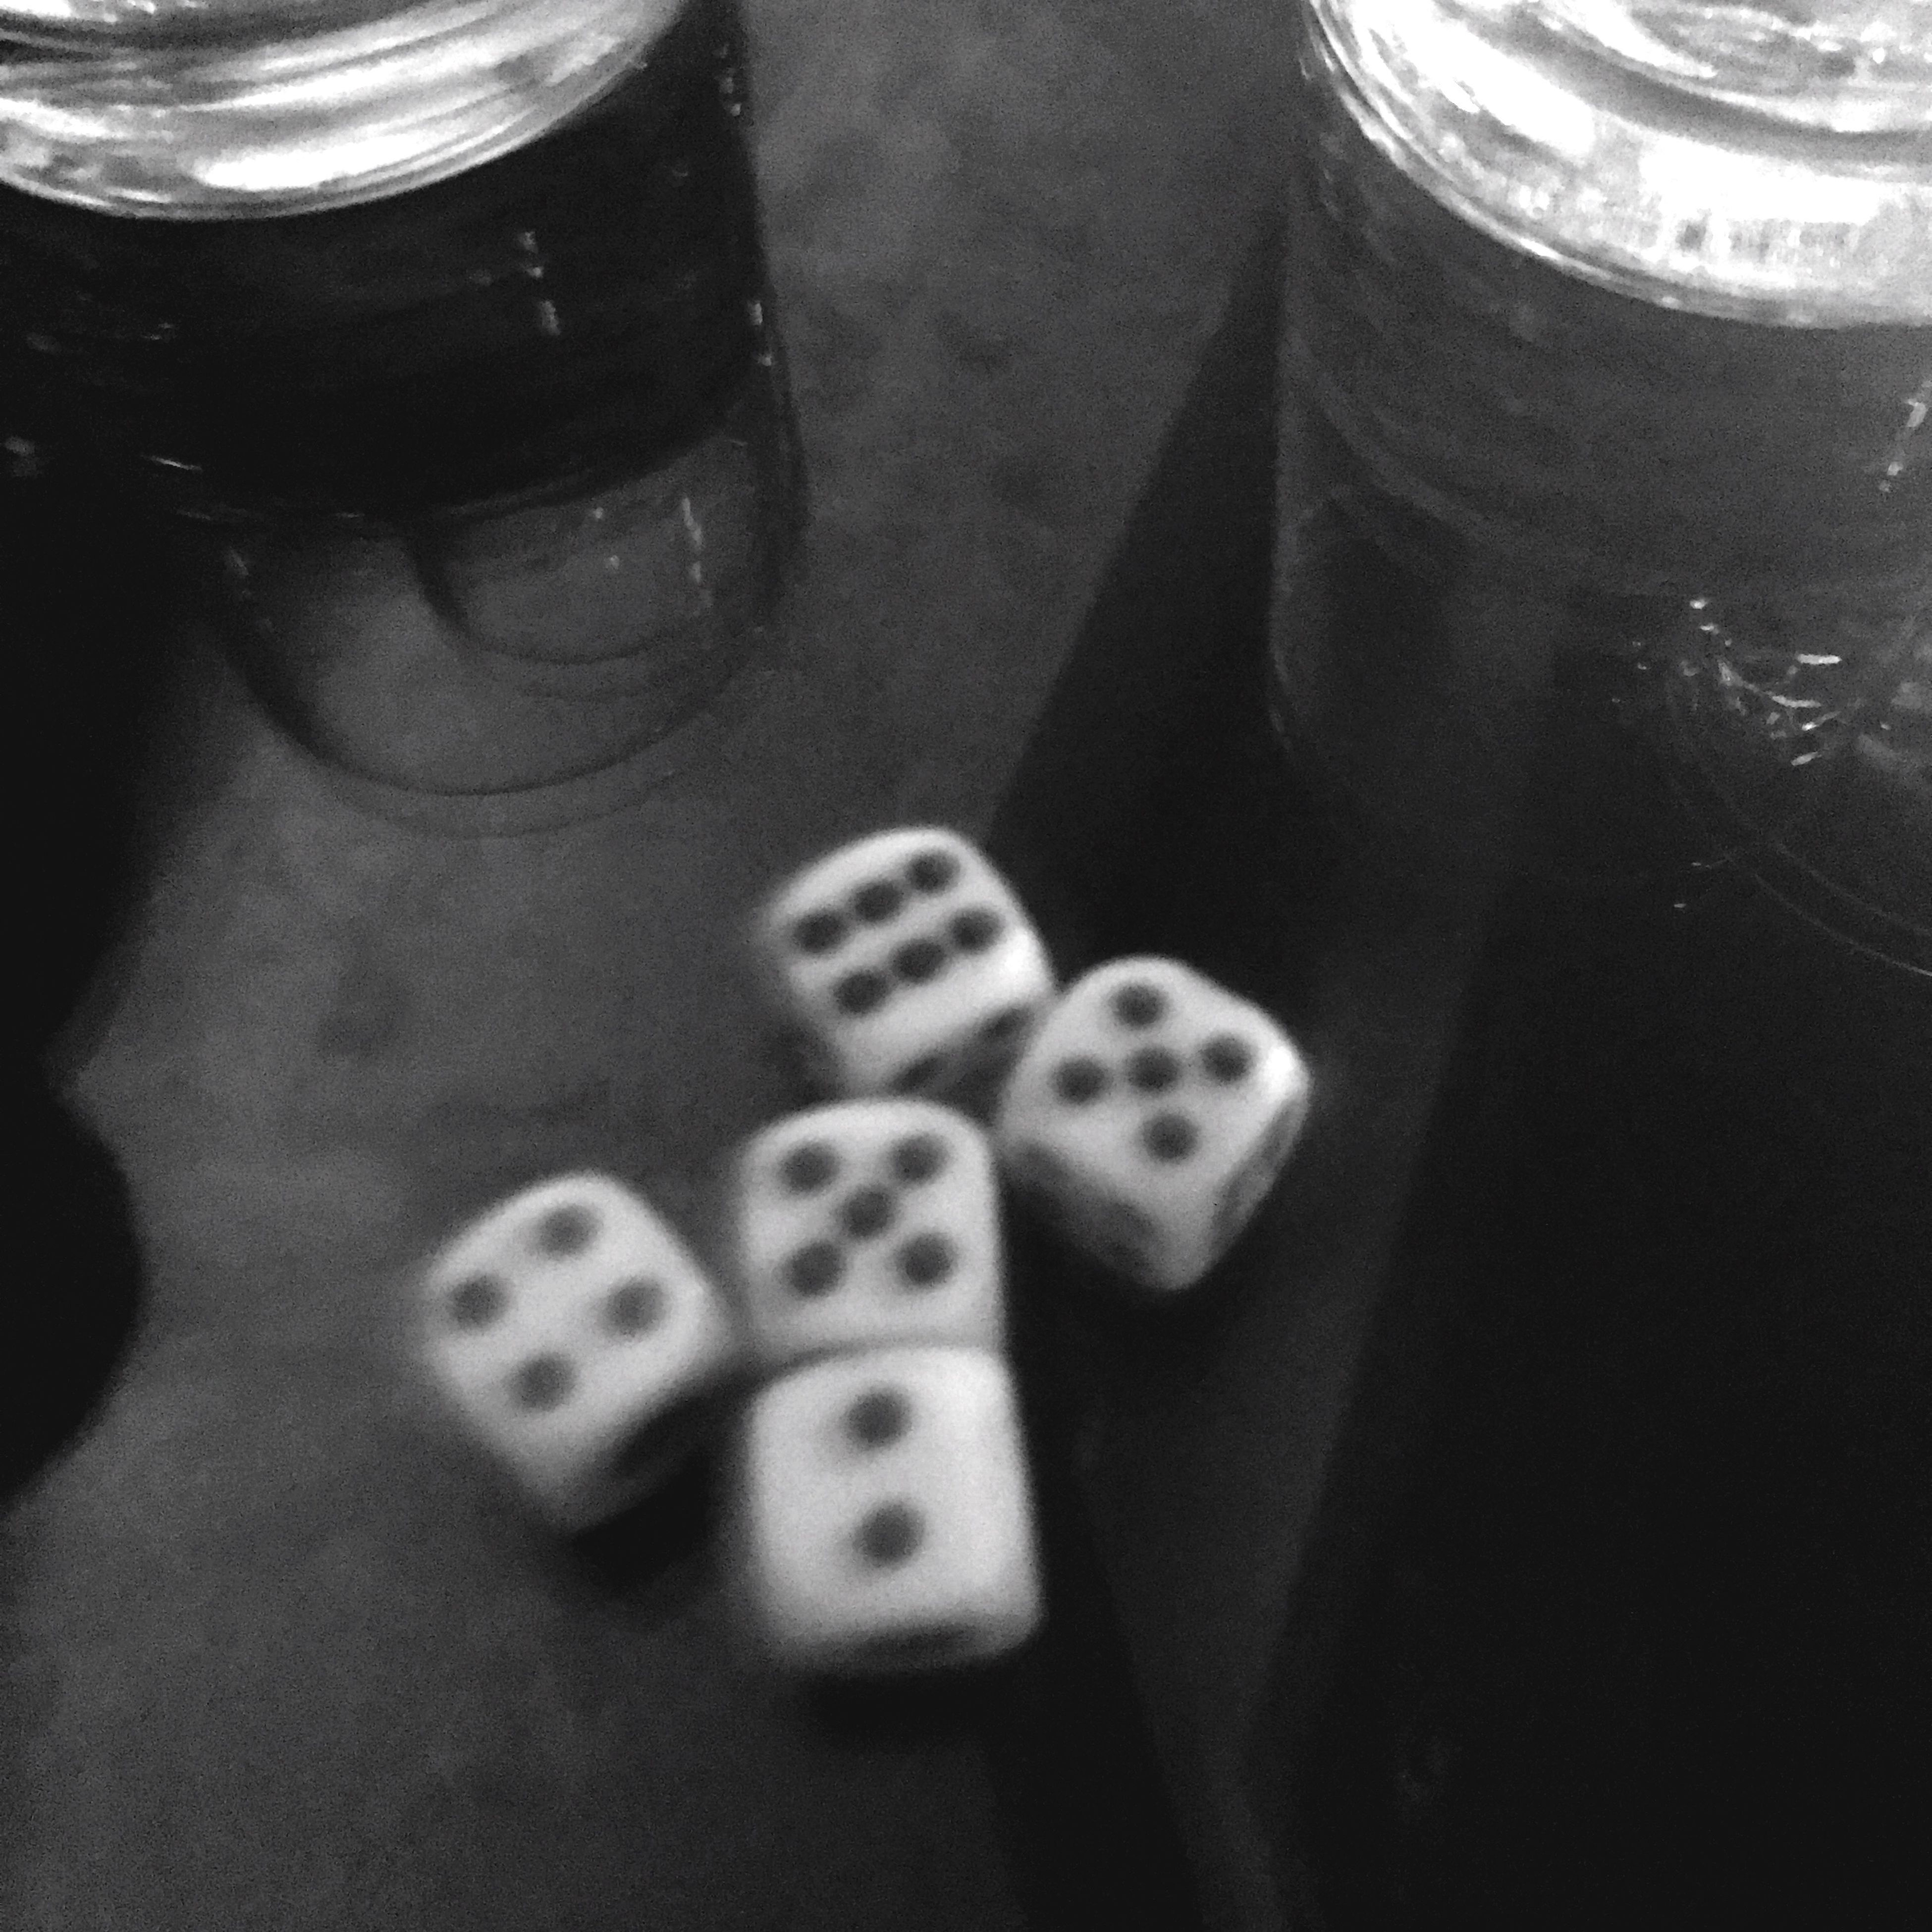 indoors, table, gambling, bottle, alcohol, close-up, no people, refreshment, drink, high angle view, chance, wine, day, gambling chip